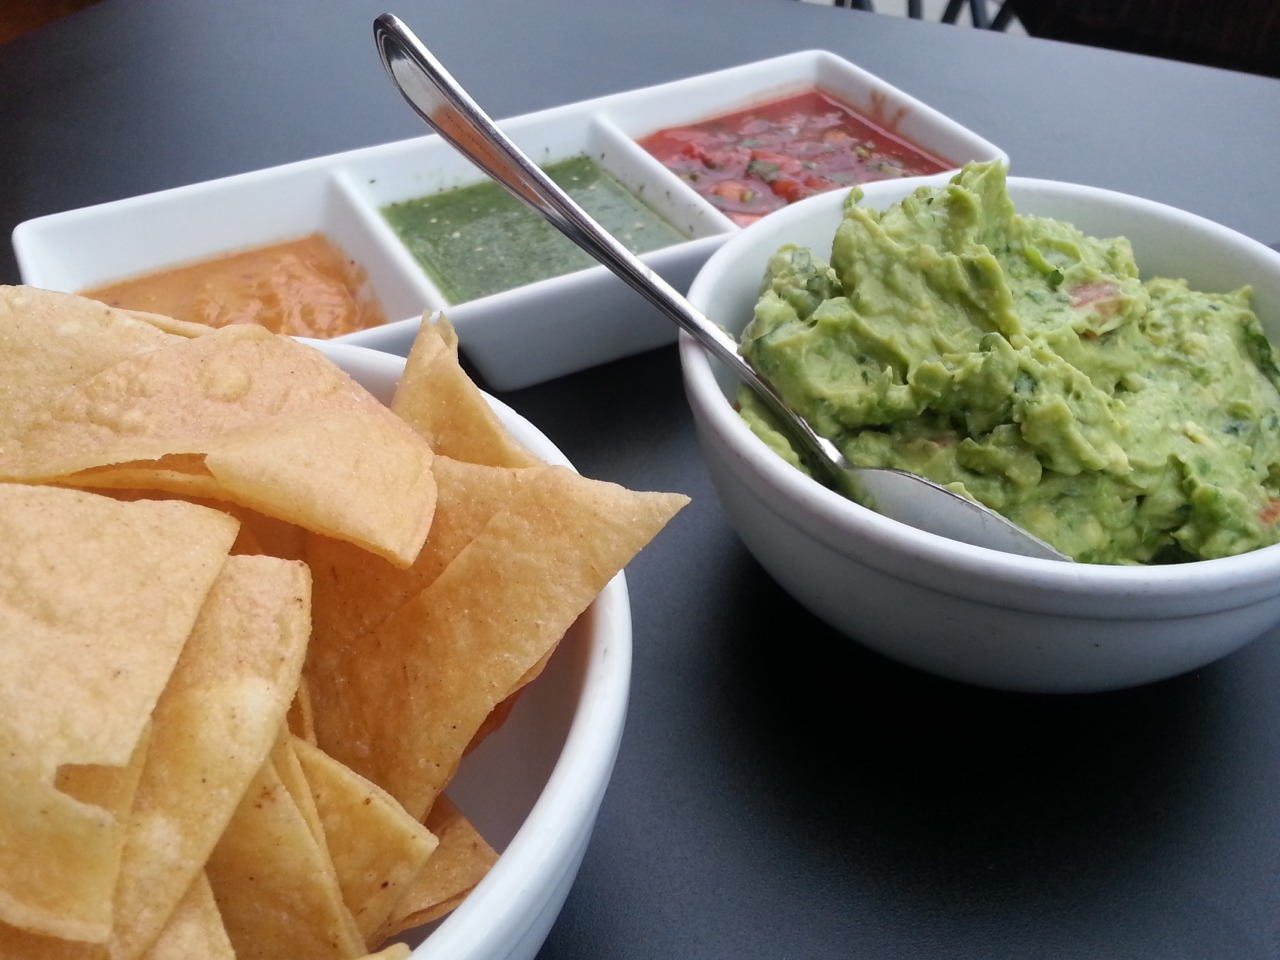 A perfect day for outdoor guacamole, chips and margaritas @eltoroblanconyc